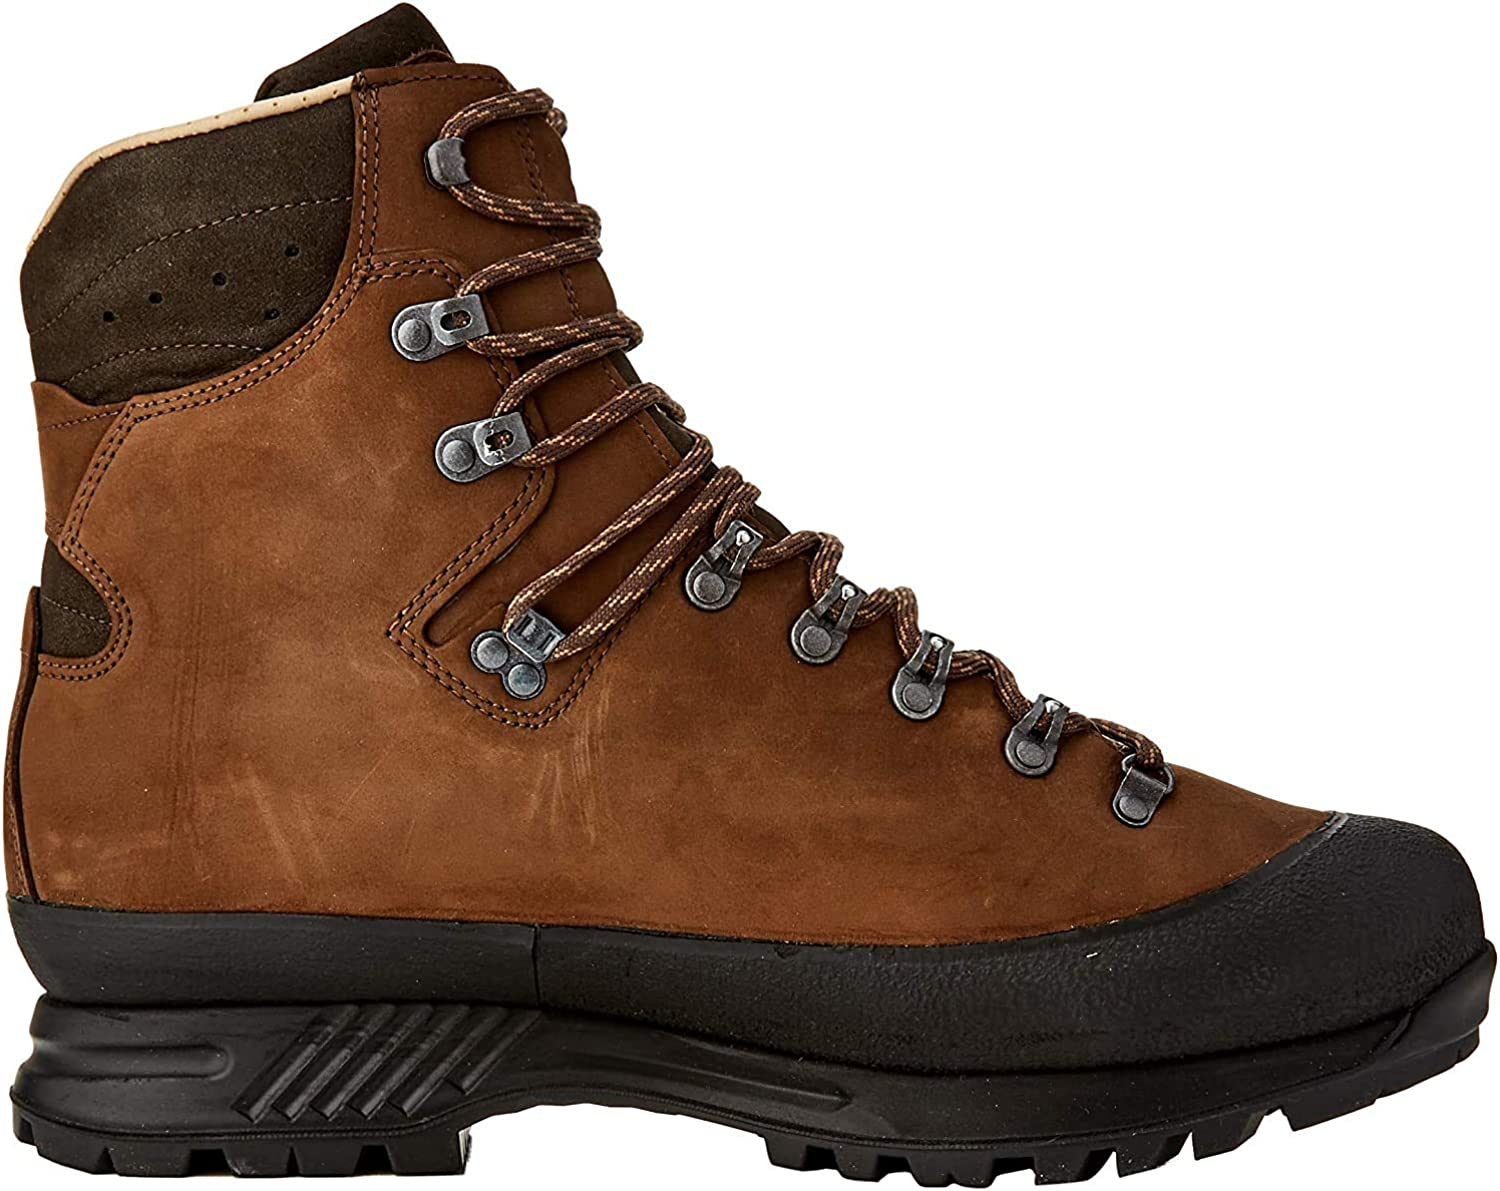 Hanwag Alaska GTX Backpacking Boot – Men s Erde Brown, US 11.0 UK 10.0